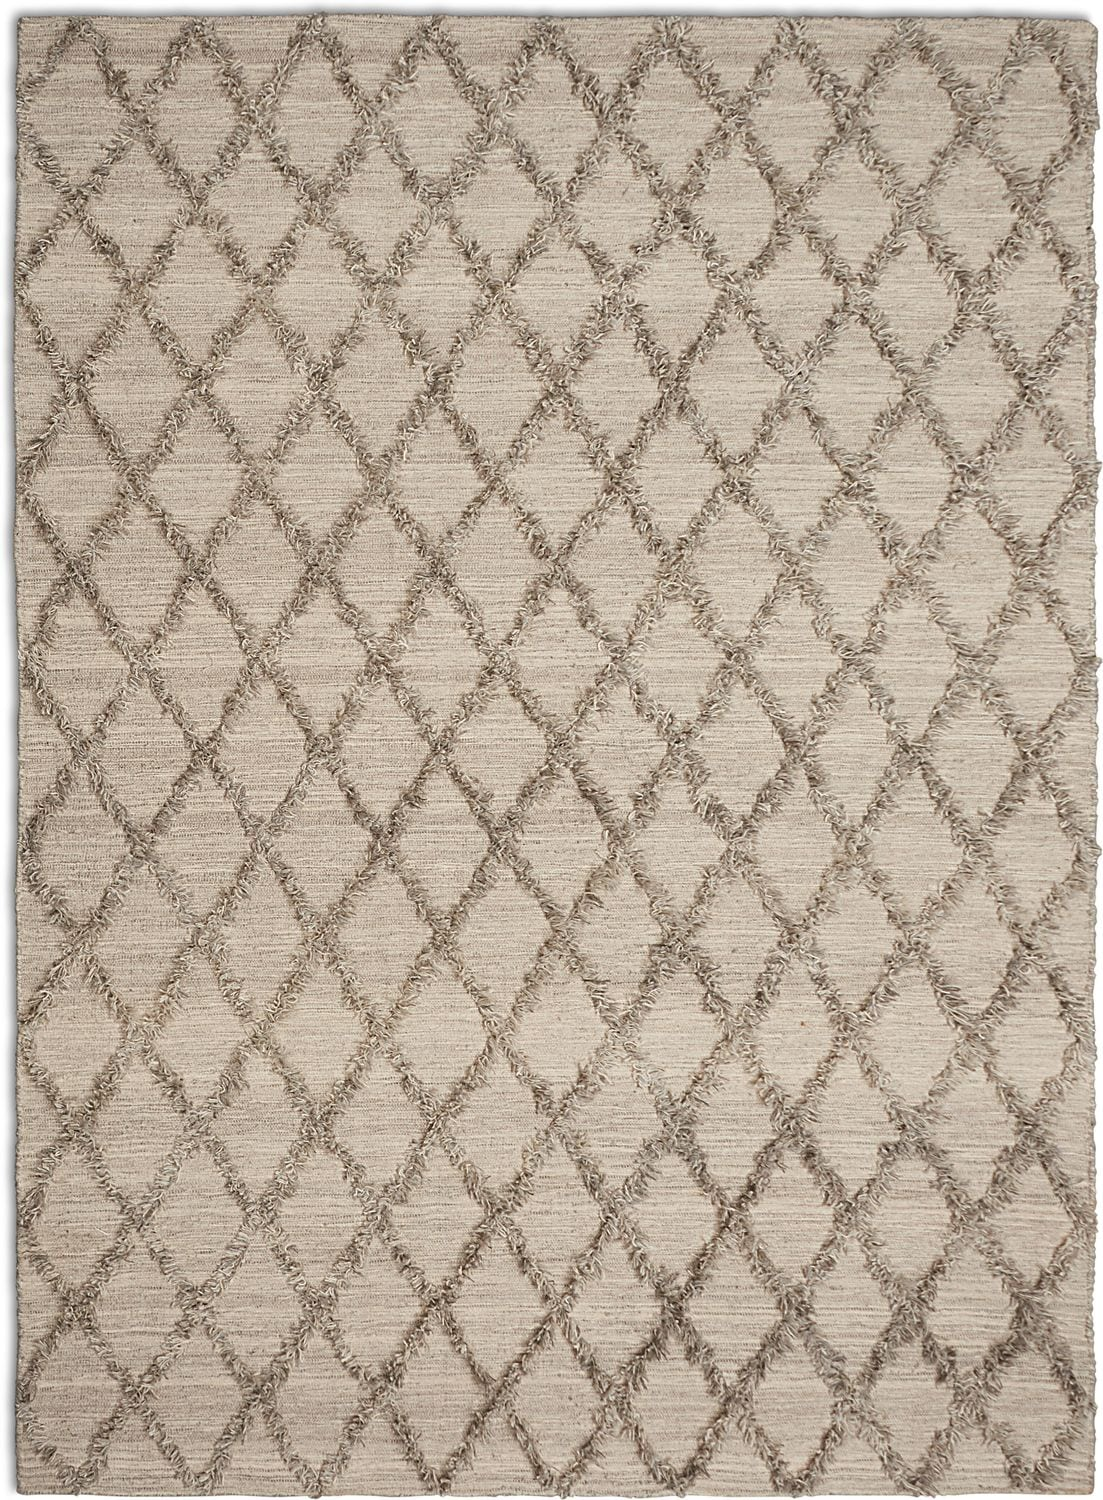 Rugs - Jucar Area Rug - Gray